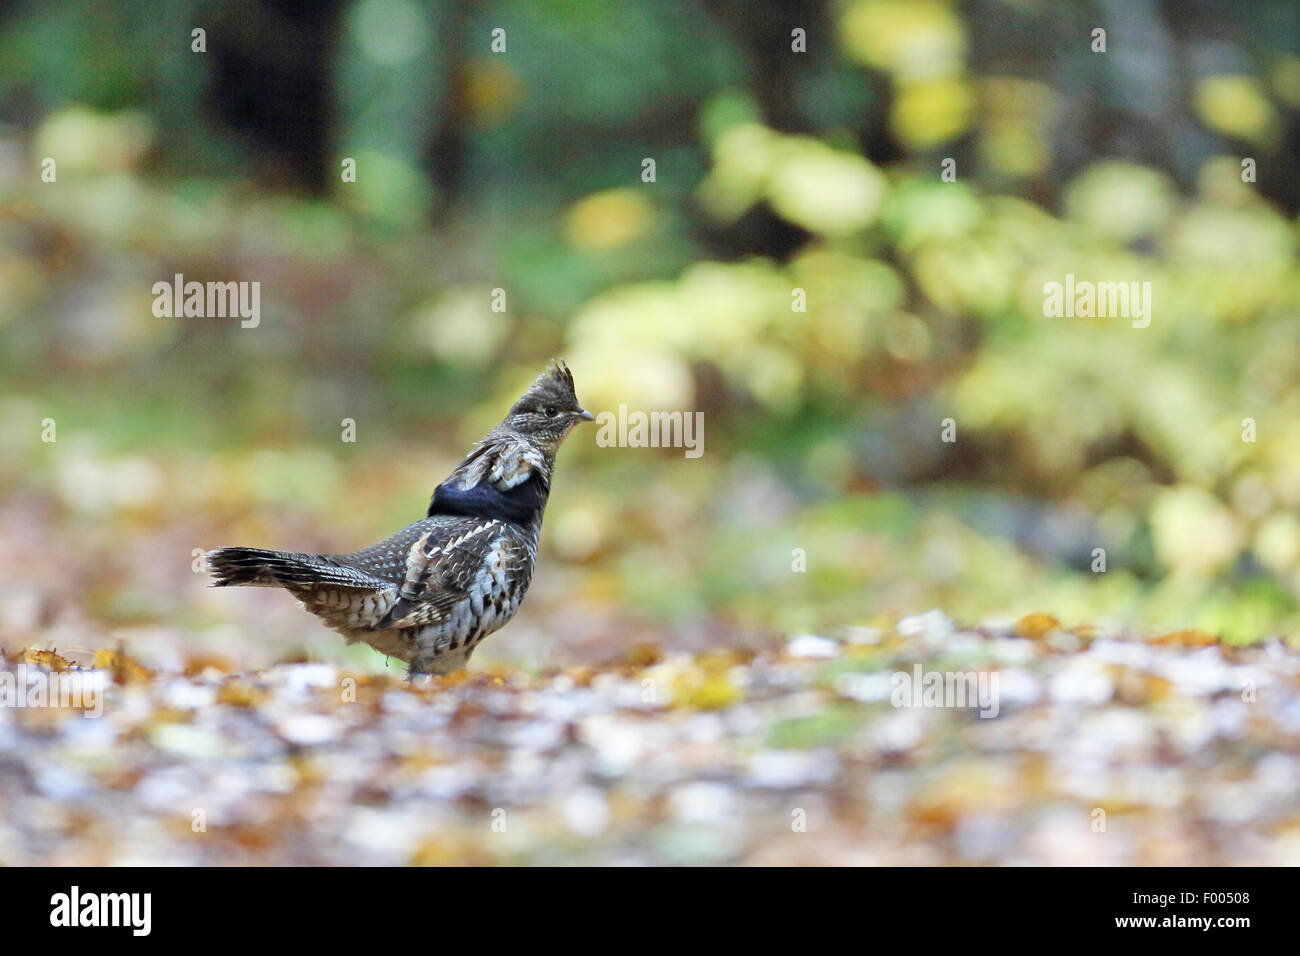 Ruffed grouse (Bonasa umbellus), male stands on the ground, Canada, Ontario, Algonquin Provincial Park - Stock Image